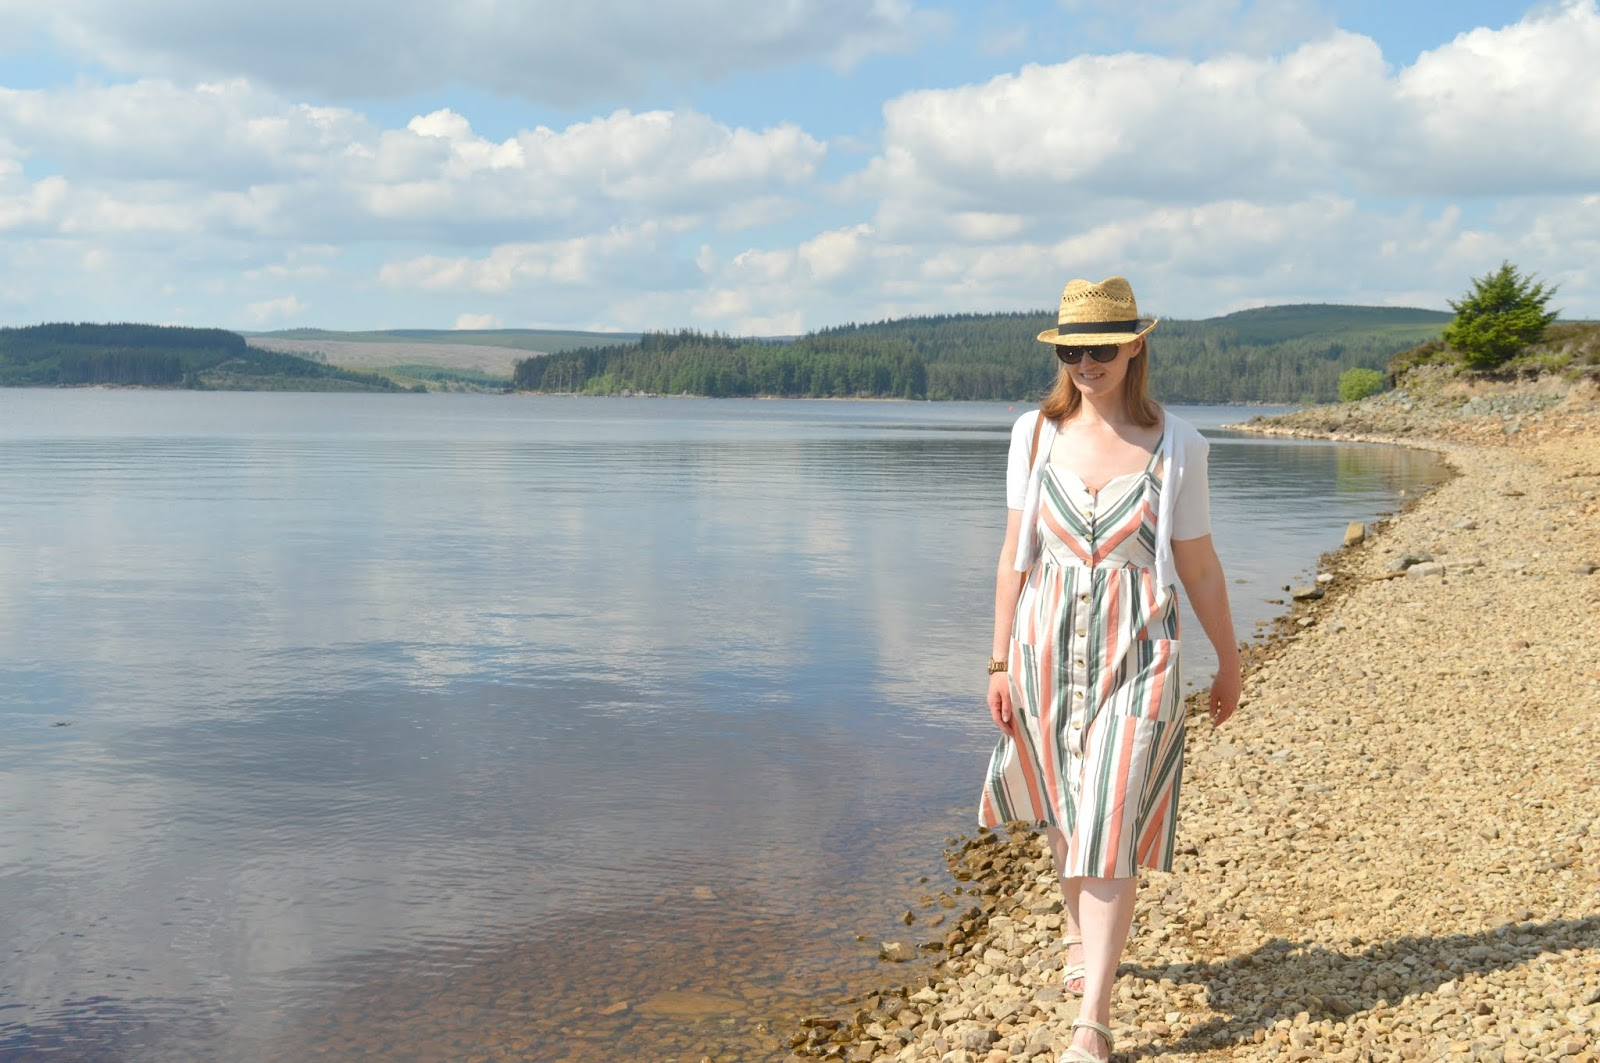 First Time Visitor's Guide to Kielder